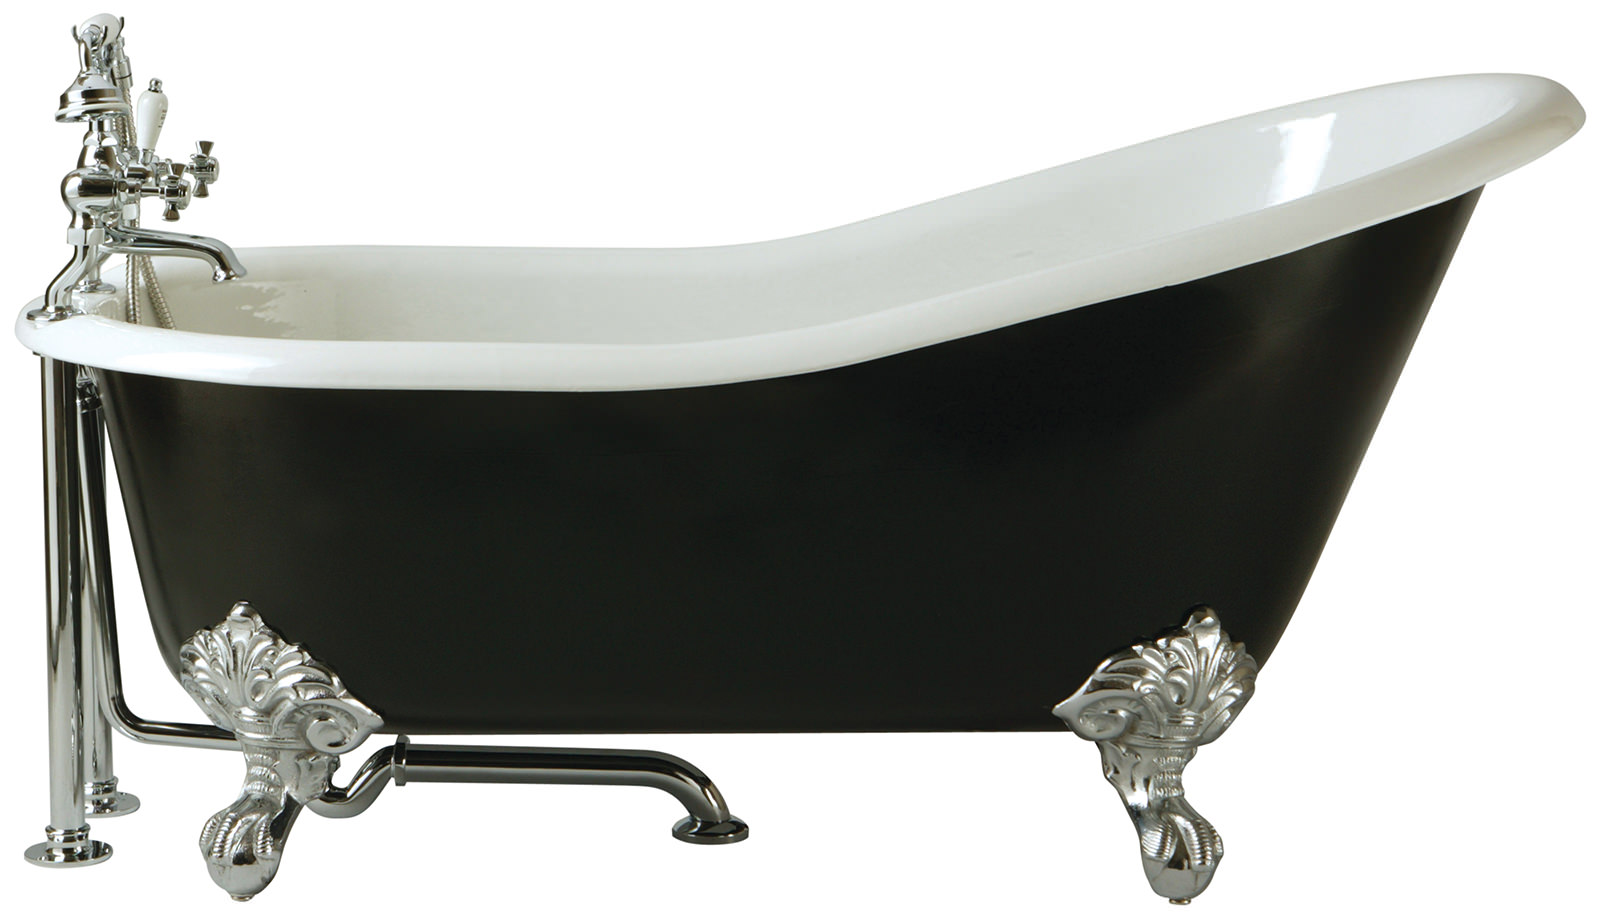 Heritage Kent Slipper Cast Iron Freestanding Bath With Feet